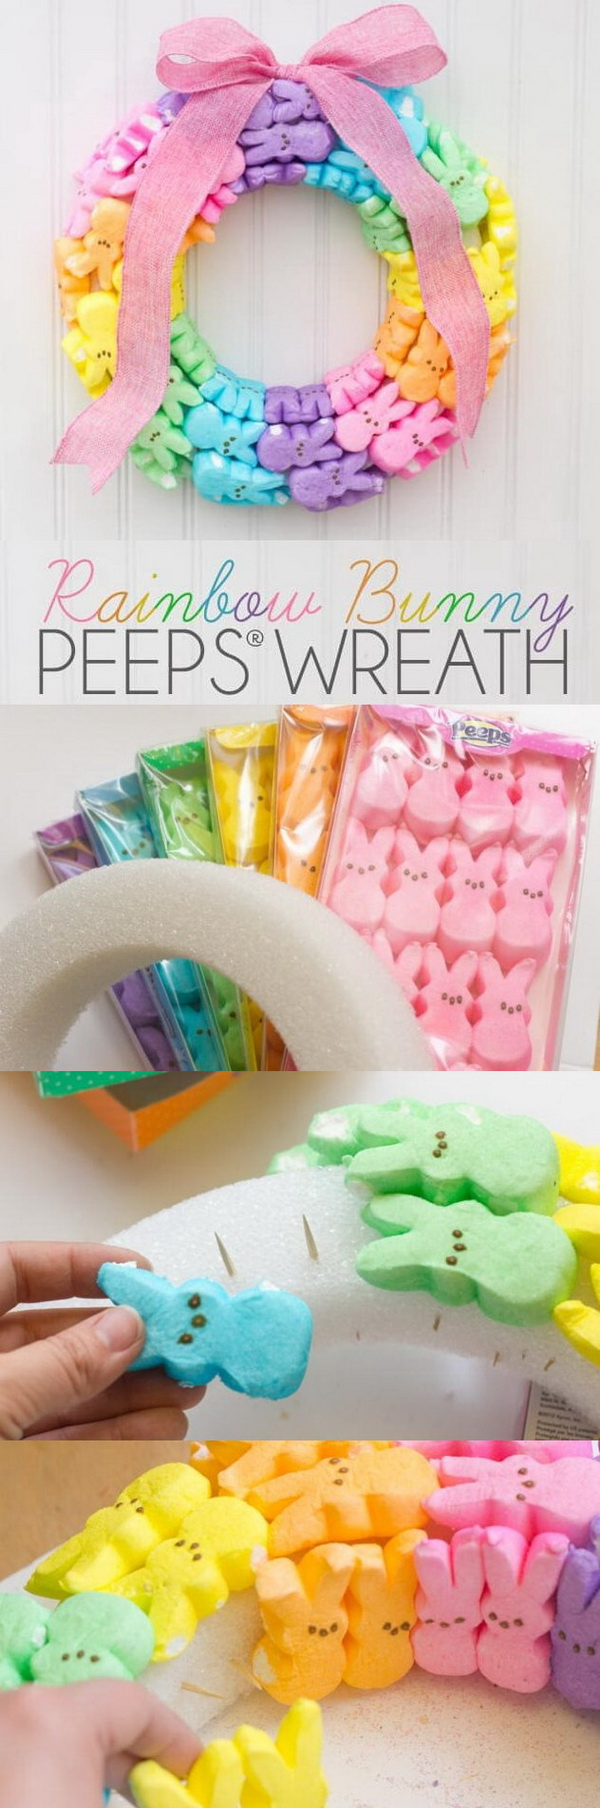 DIY Easter Wreath Ideas: Rainbow Bunny Peeps Wreath.